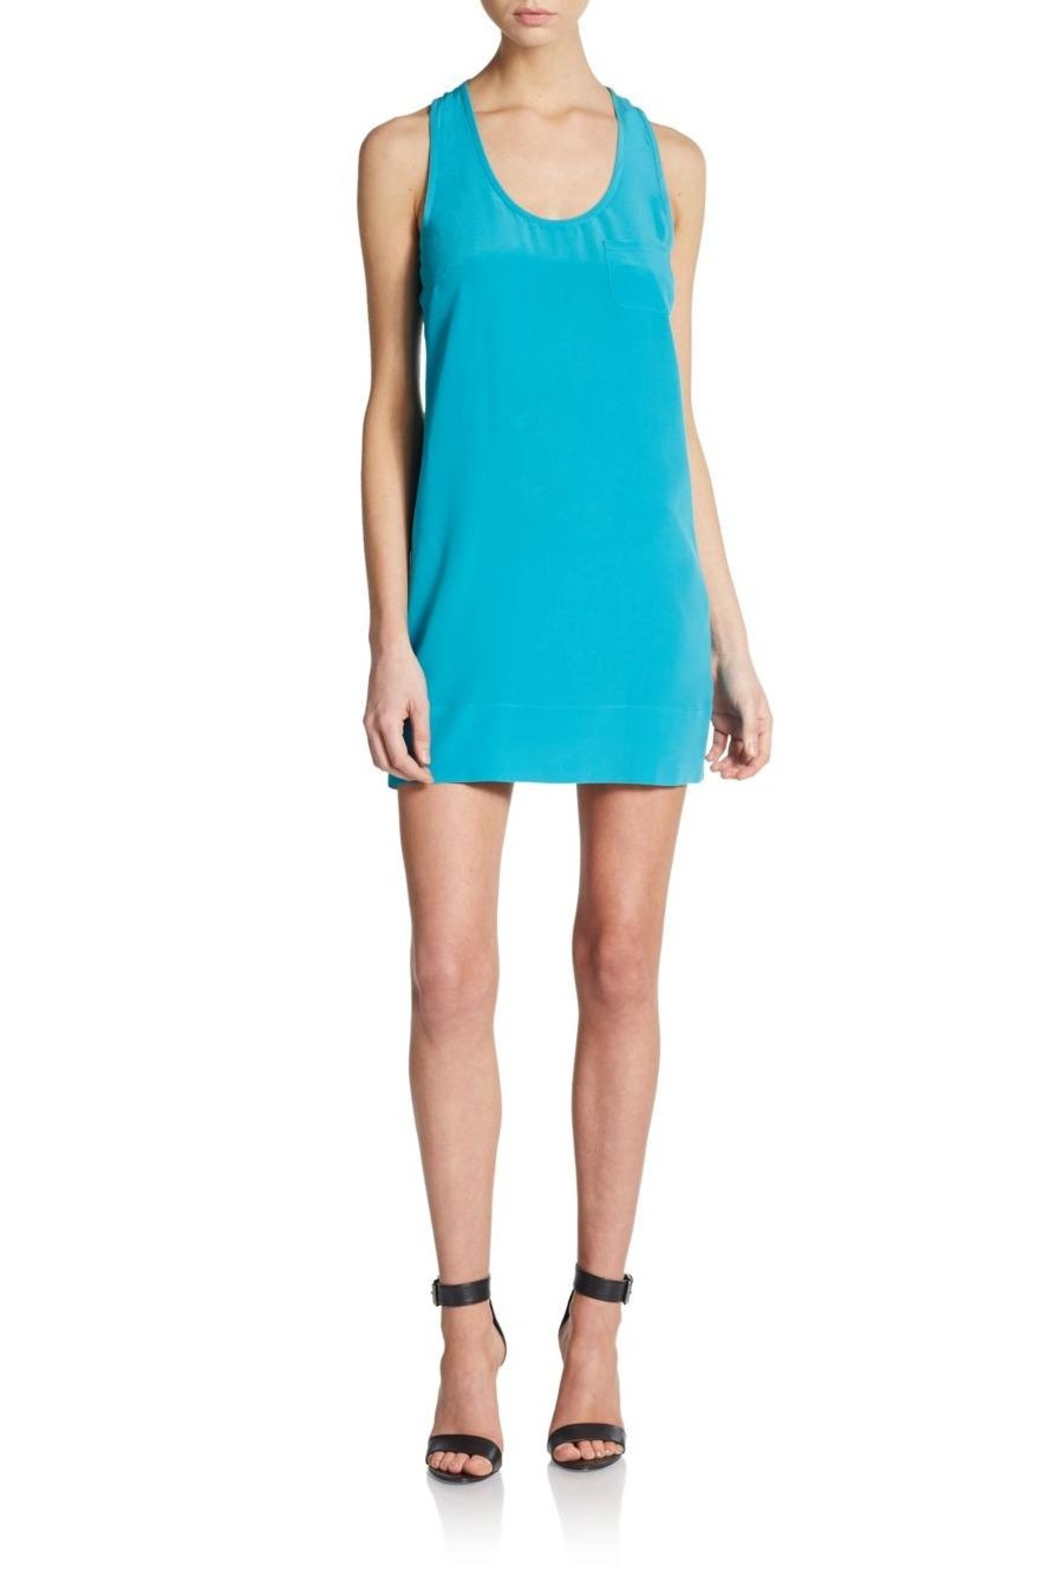 Joie Peri B Dress - Side Cropped Image